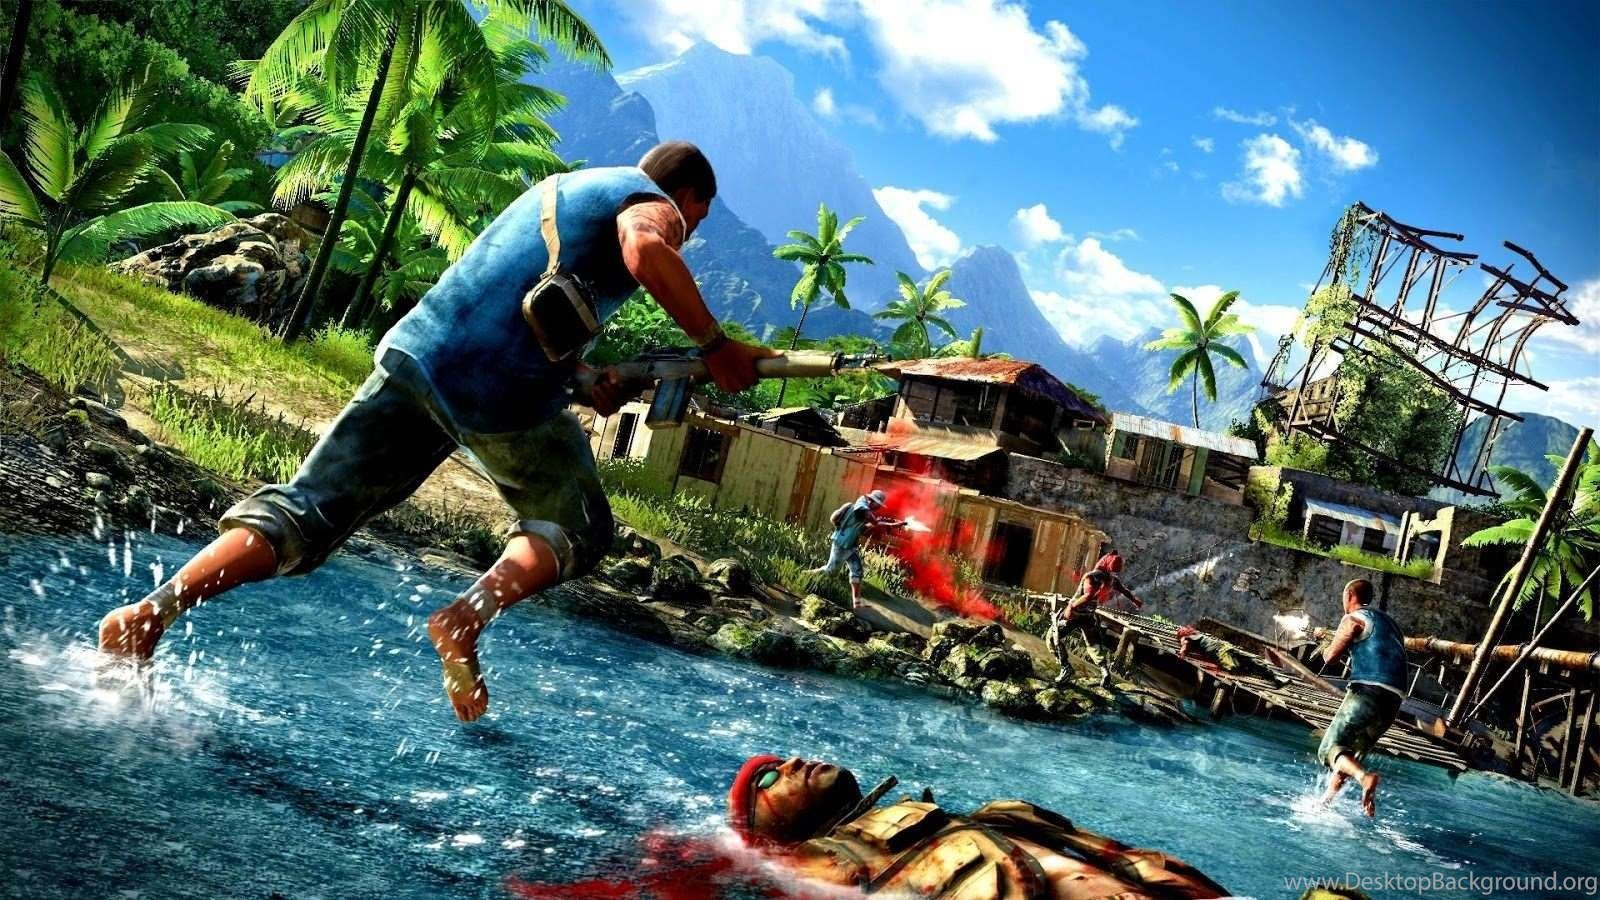 Far Cry 4 Wallpapers Desktop Background